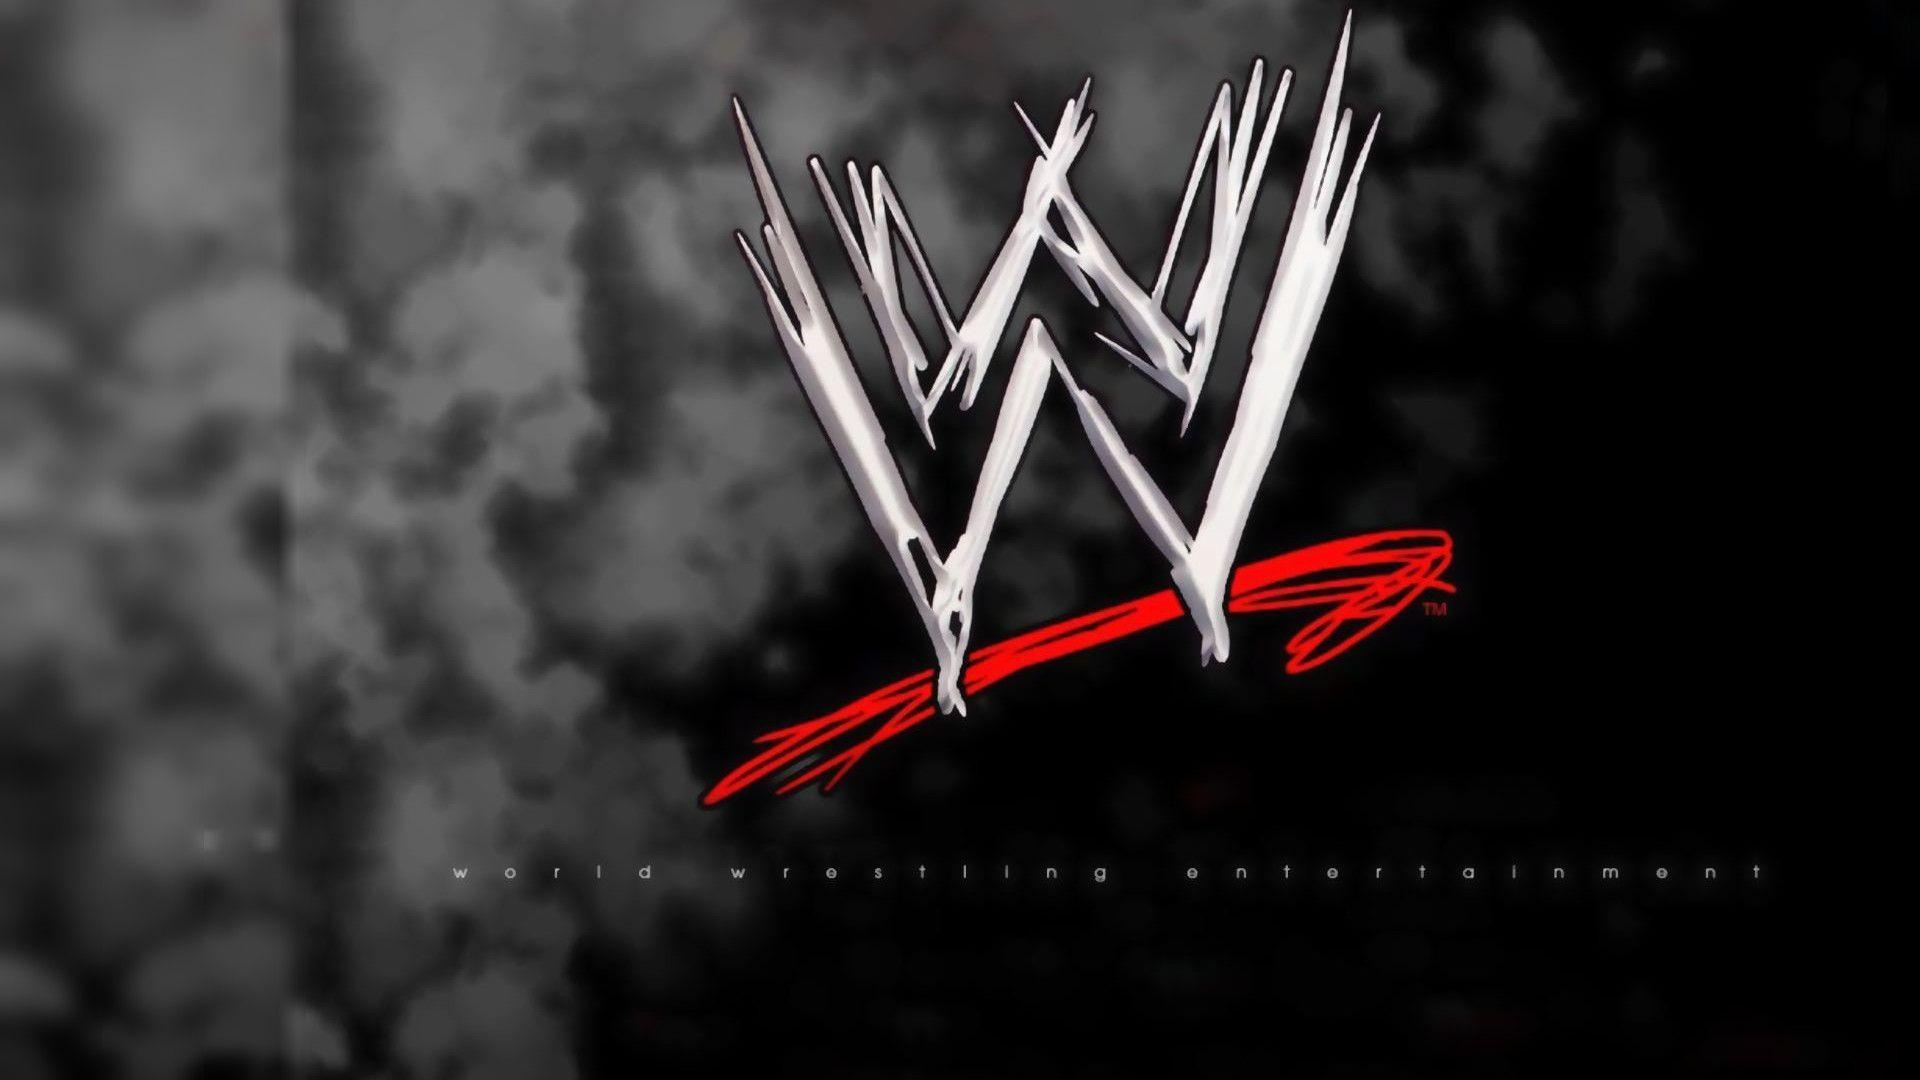 Wwe wallpapers free art wallpapers